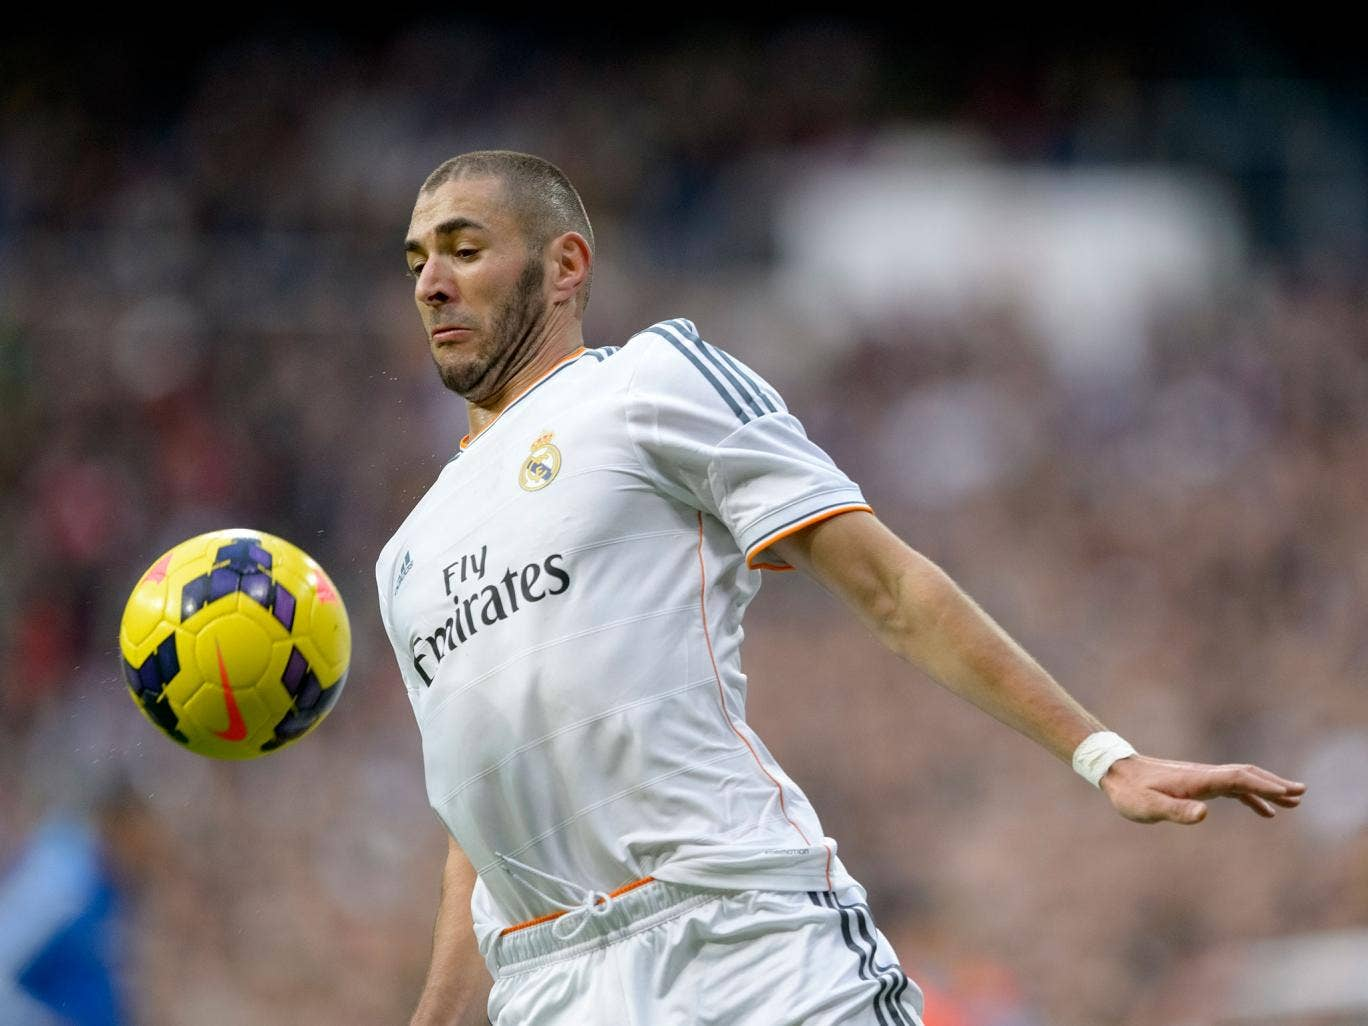 Arsenal could revive their interest in Real Madrid striker Karim Benzema in January